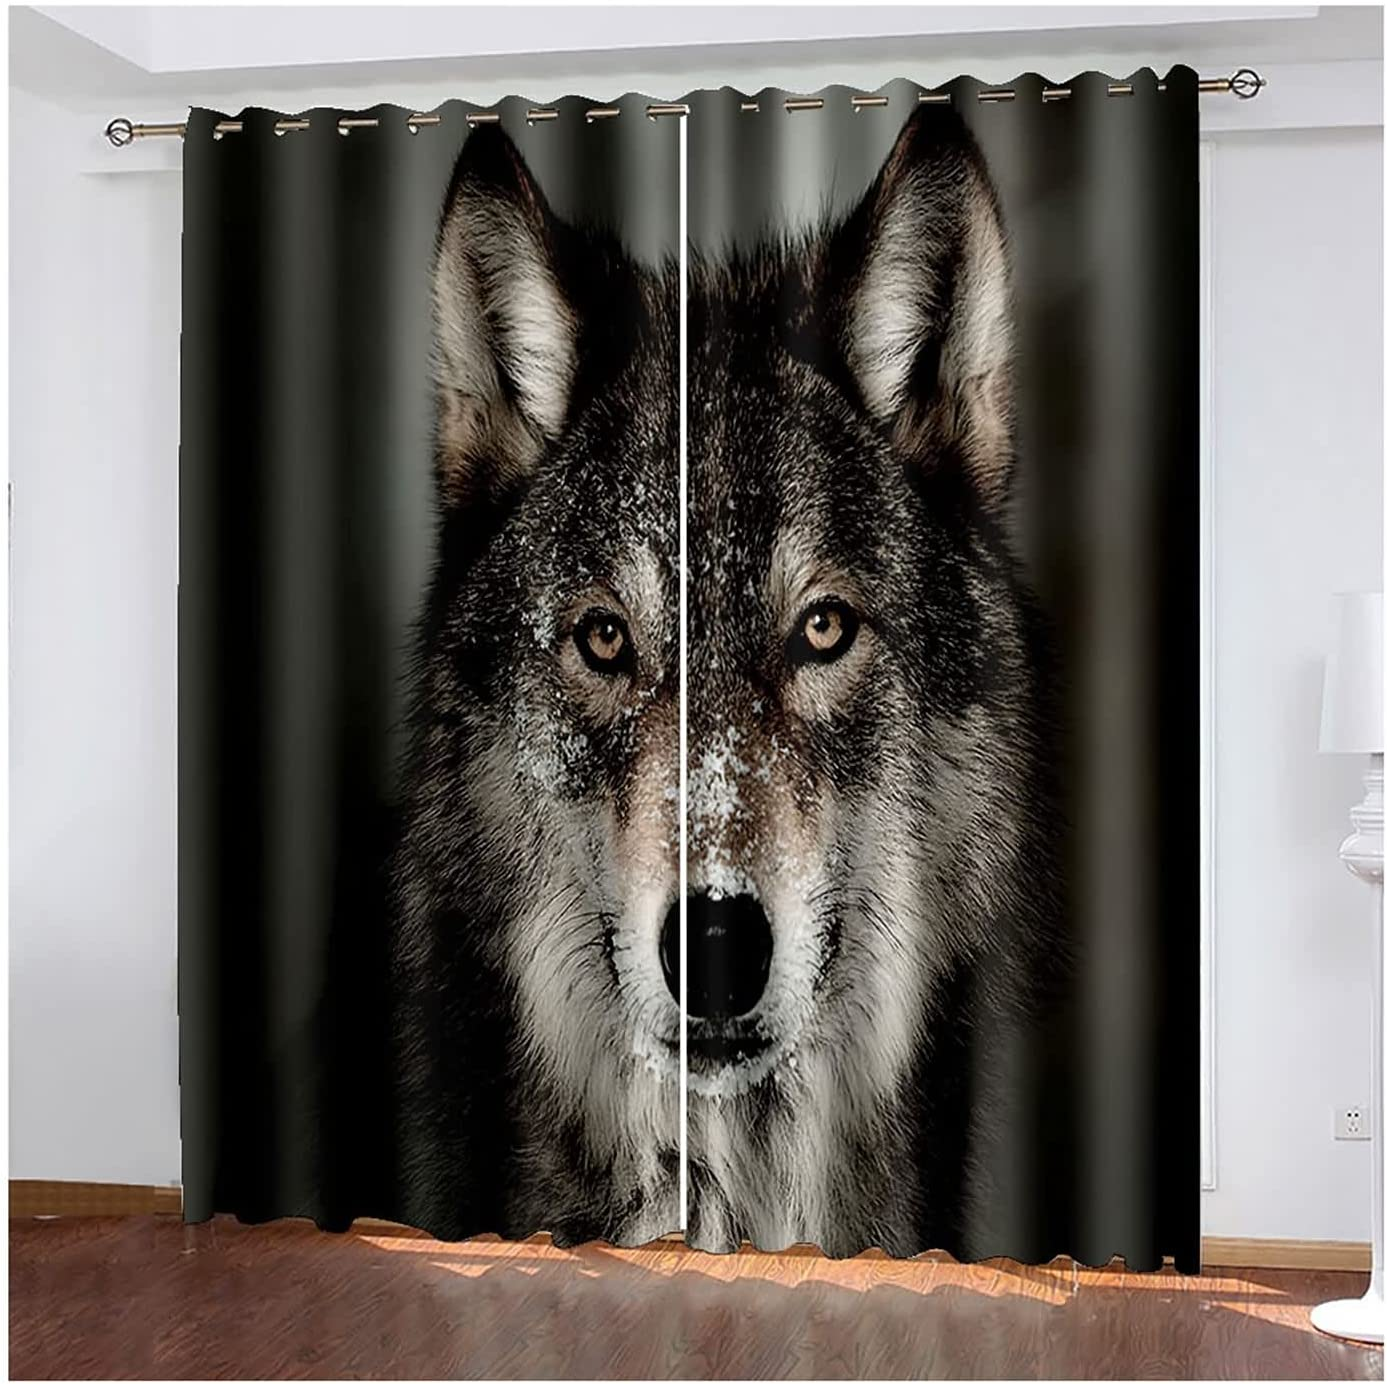 Curtains Los Angeles Mall Living Popular Room 2 Panels Design Bedroom for Wolf